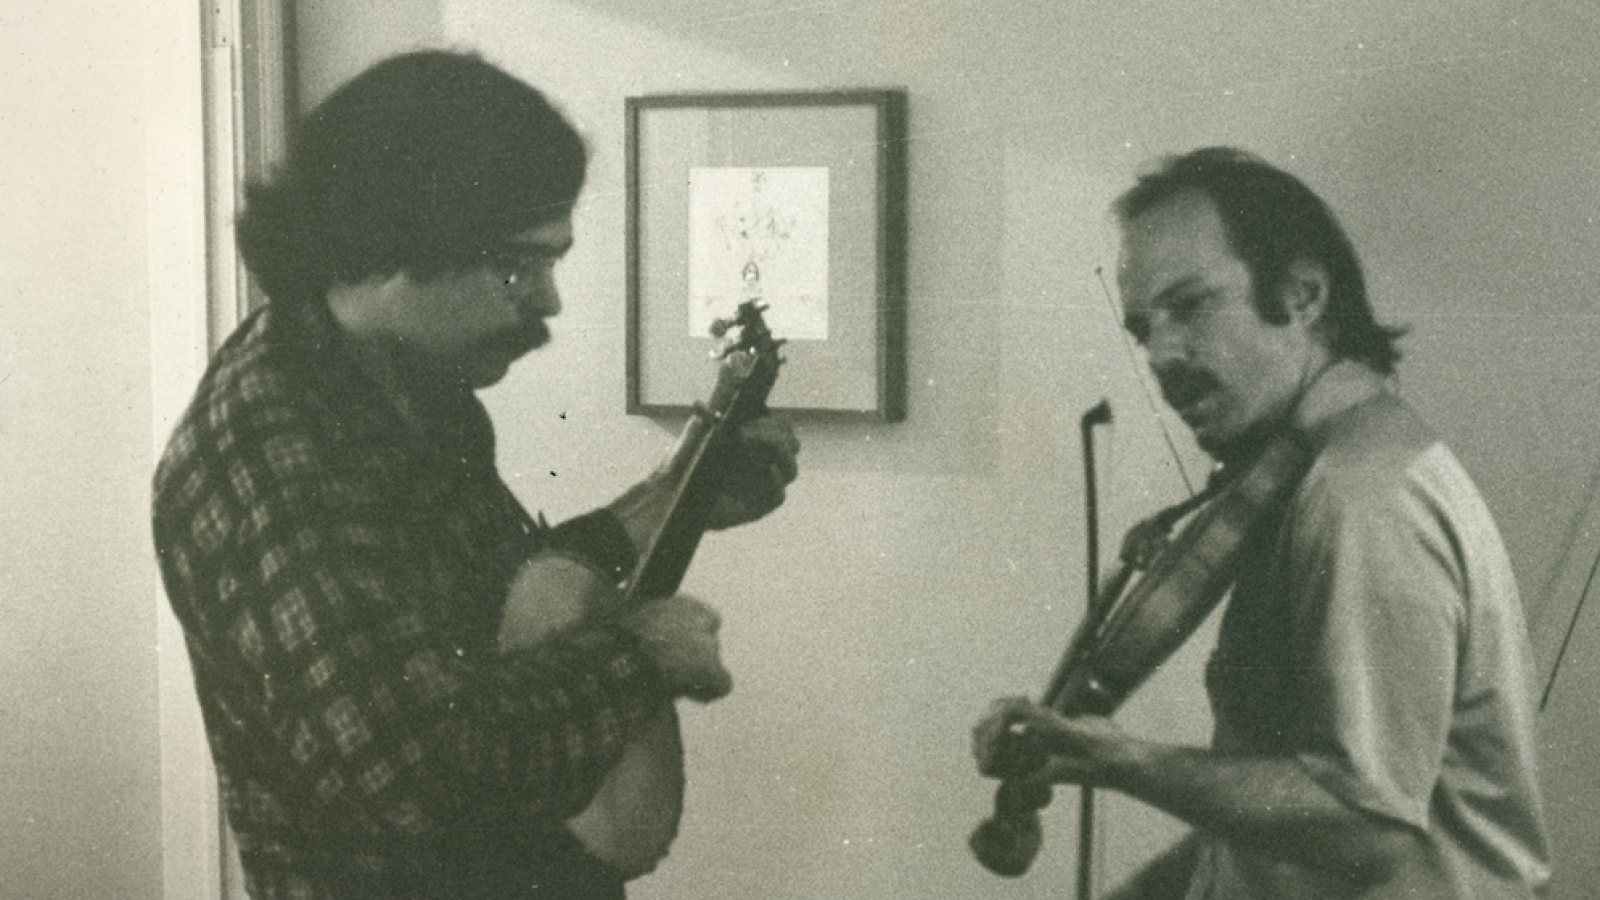 Unger playing banjo in living room with an unknown man, 1973